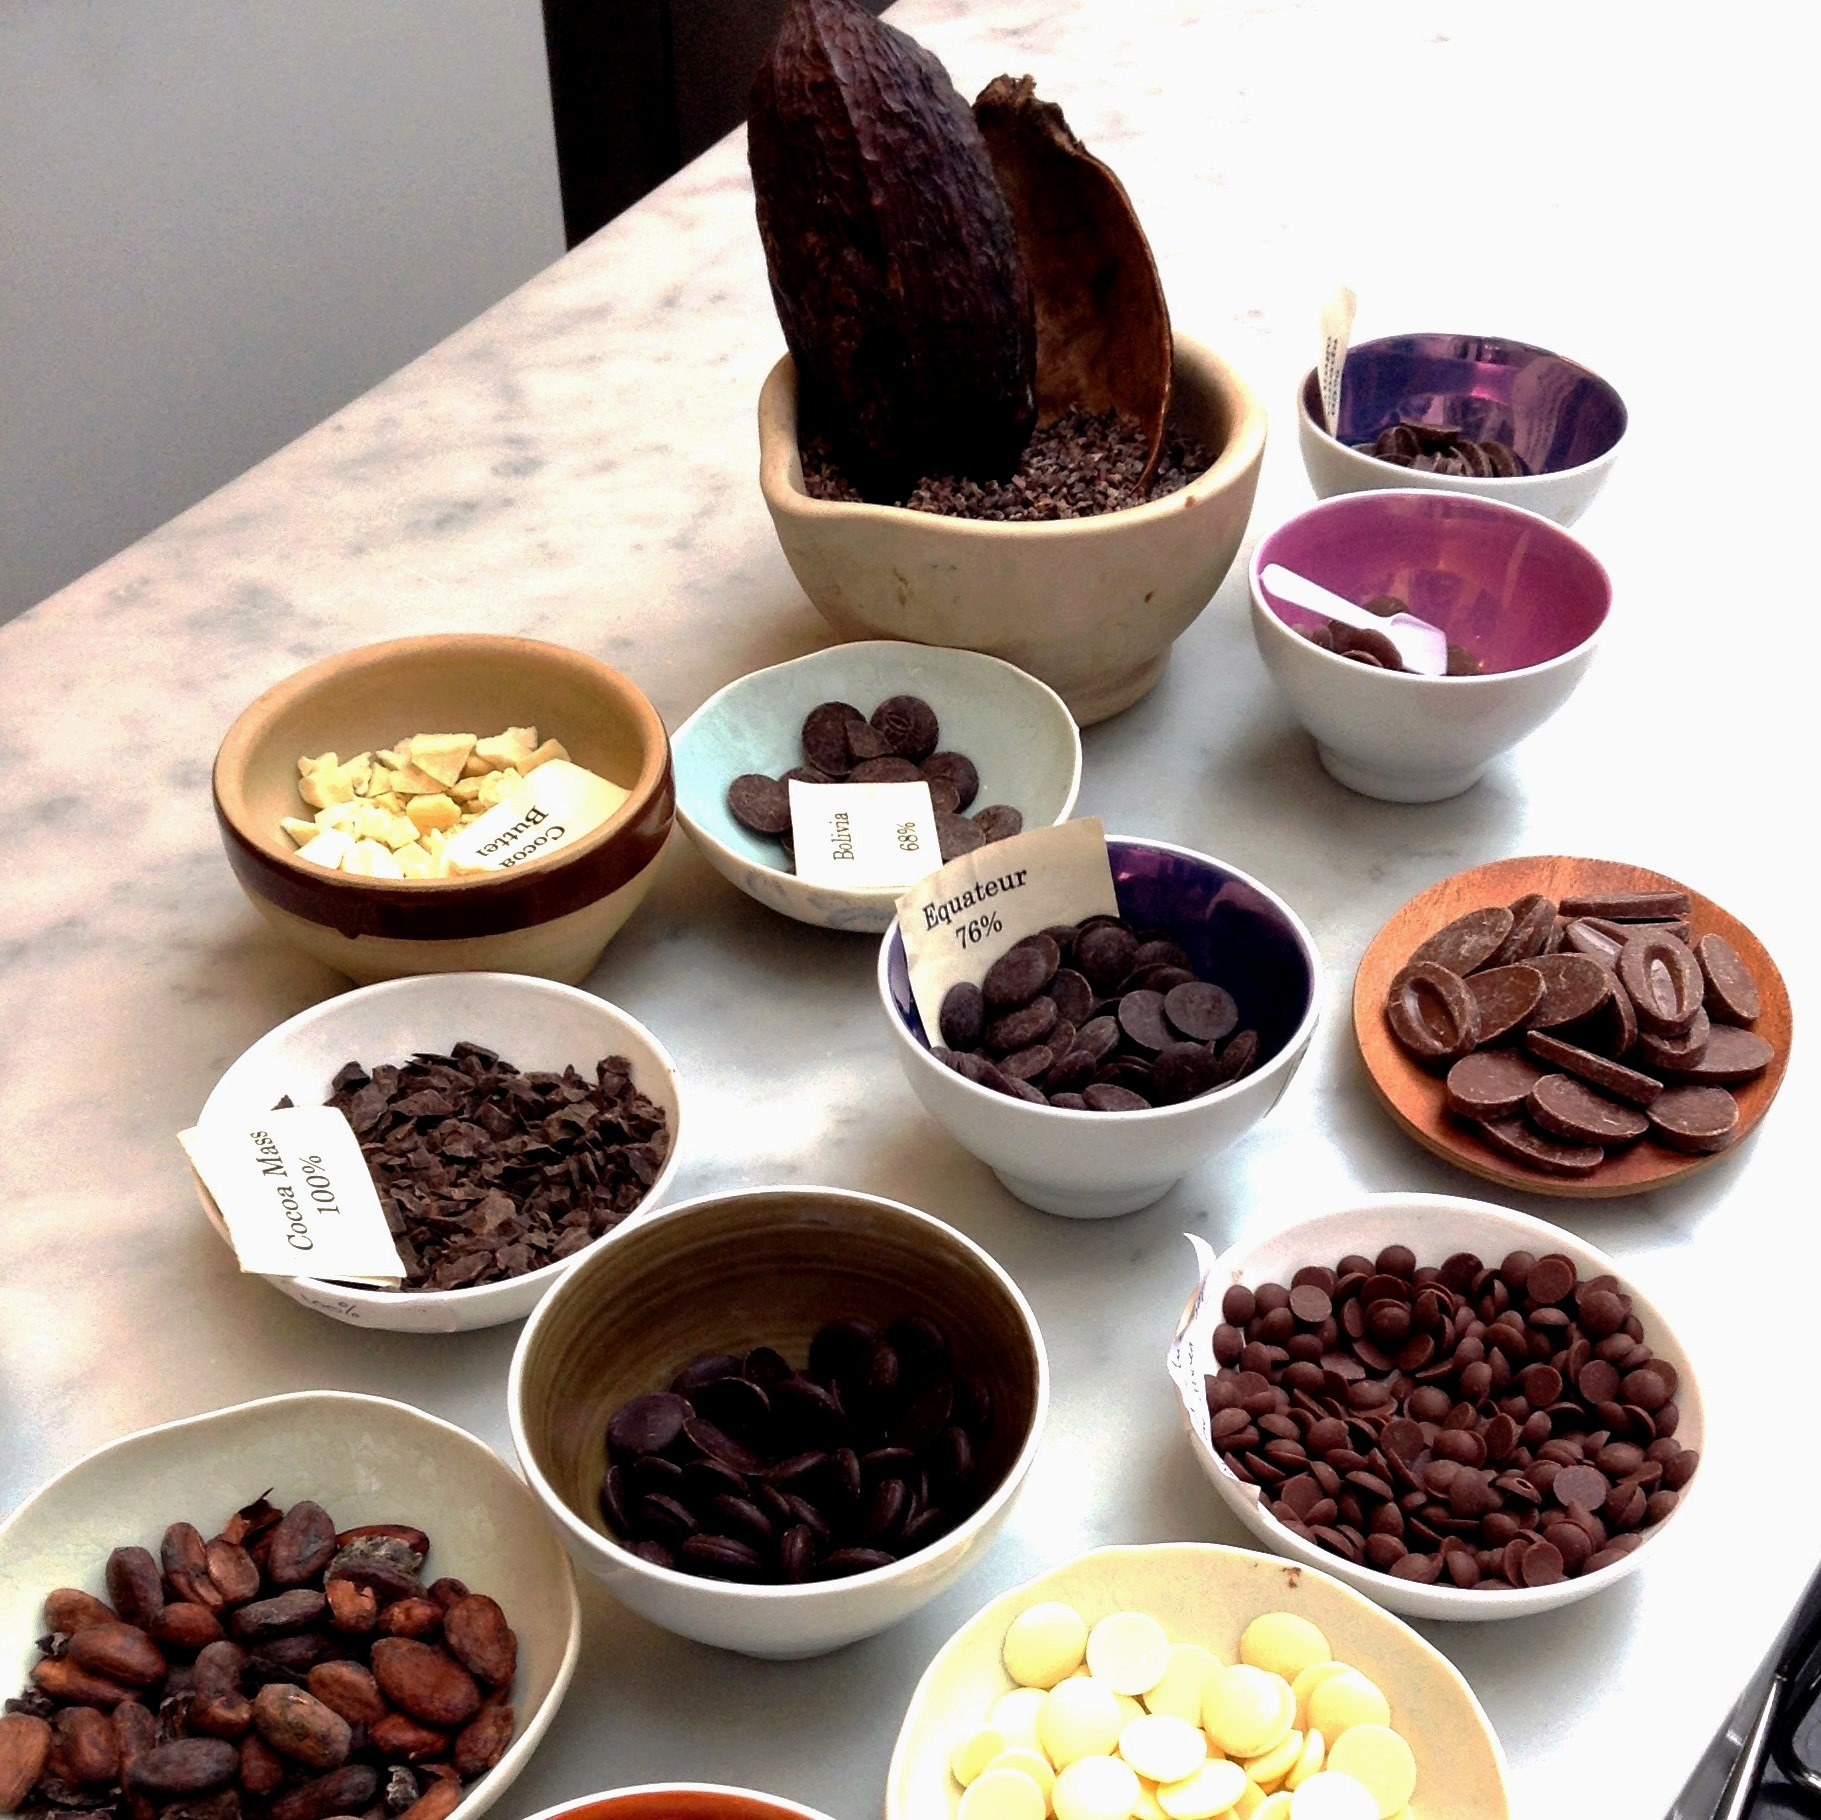 Chocolate tasting on the Notting Hill Chocolate and Coffee Tour